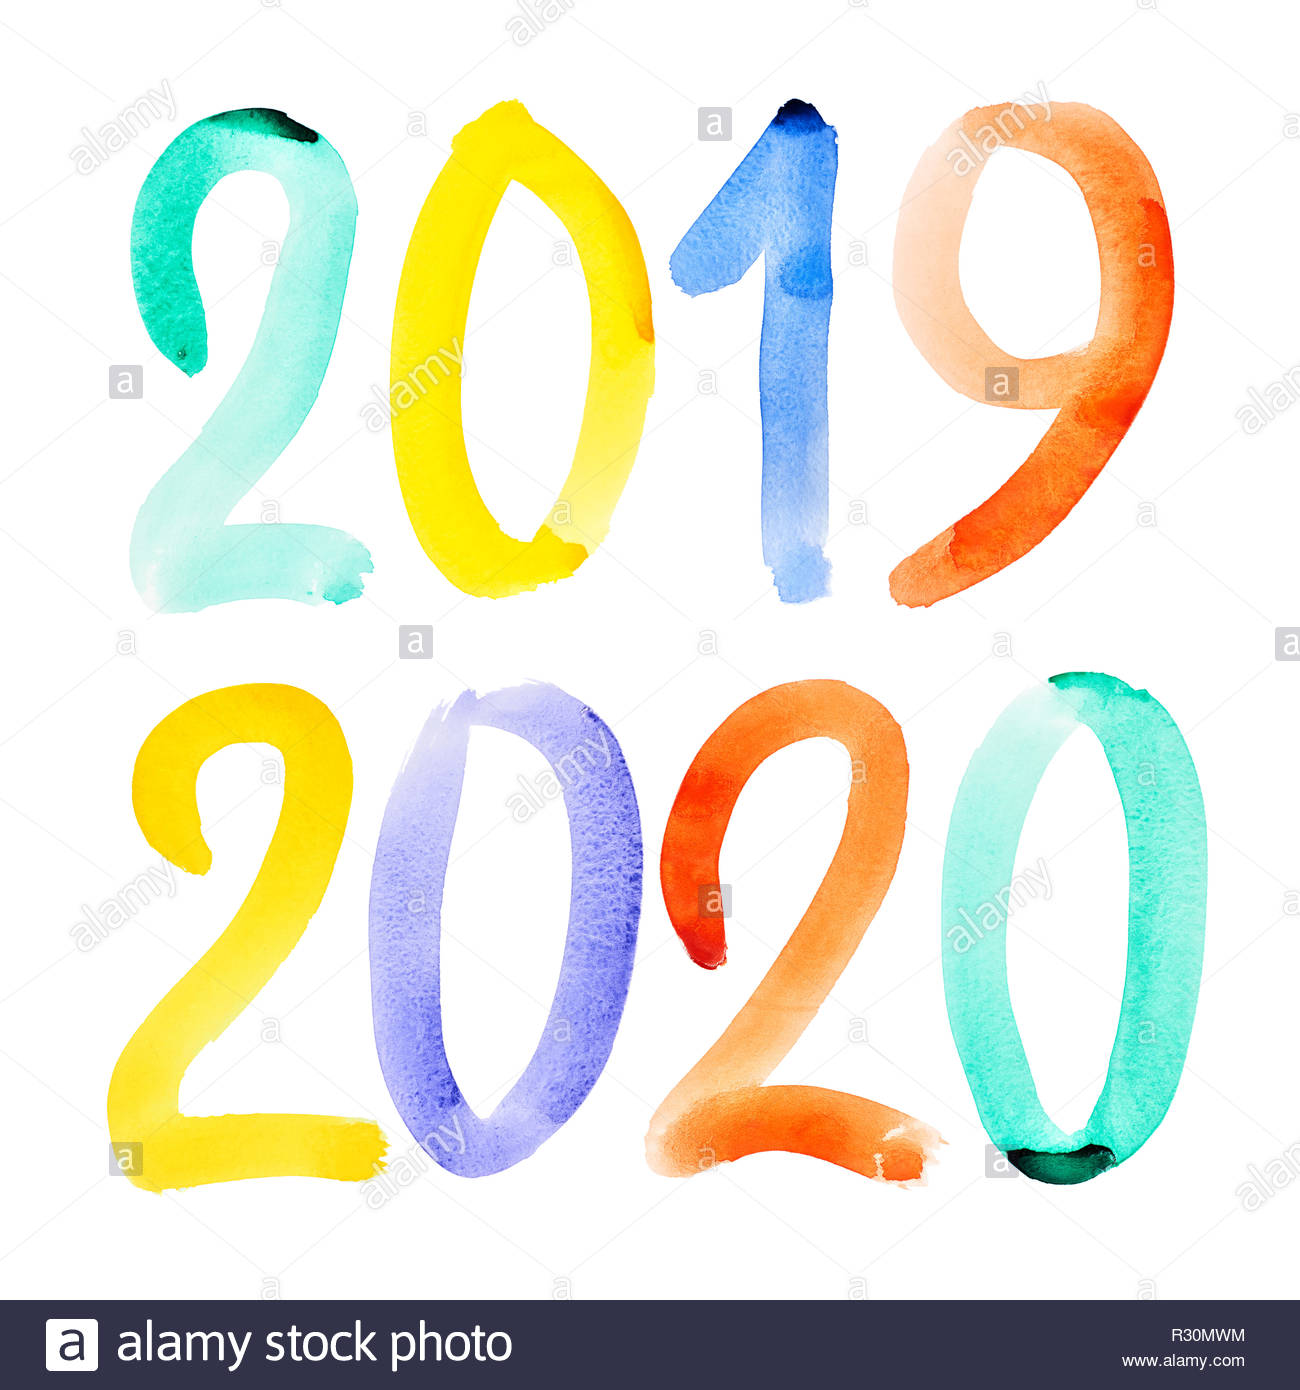 2020.Looking Back Looking Ahead 2019 In Review Predictions